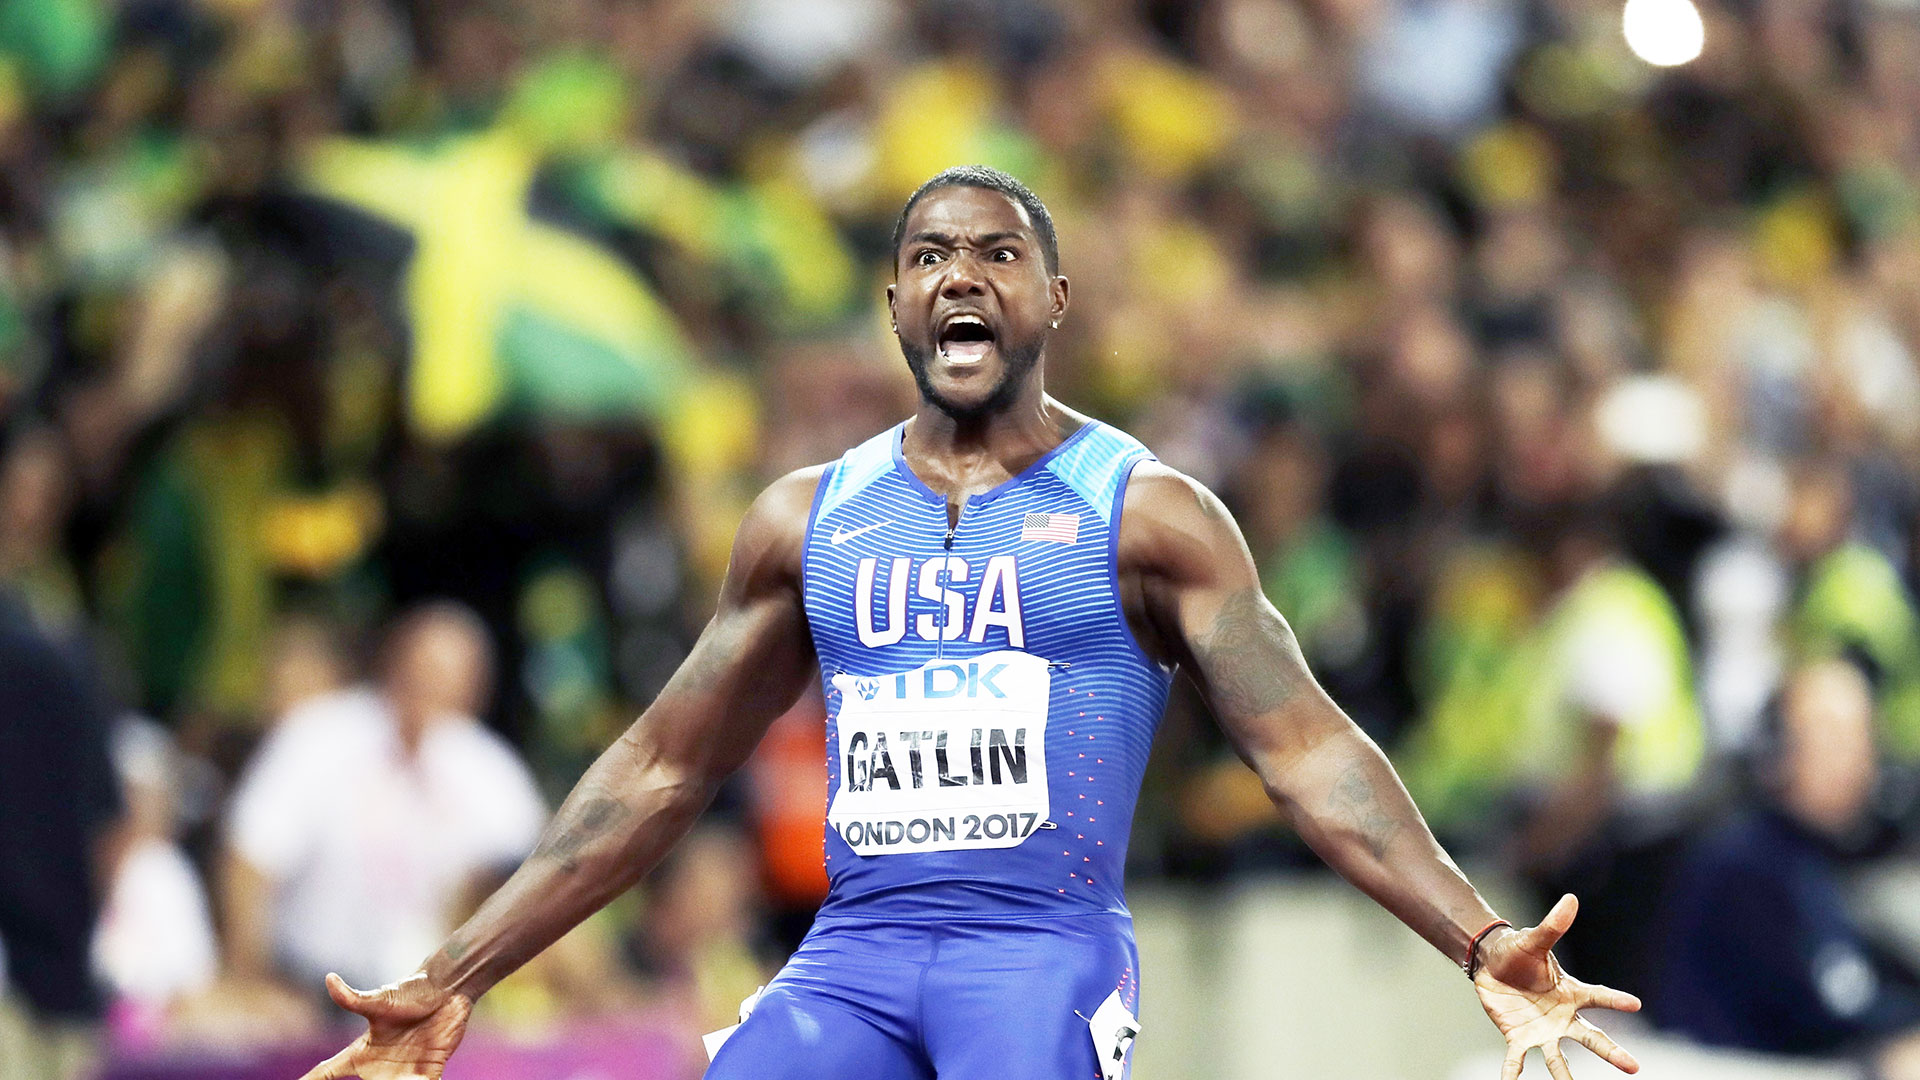 Justin-Gatlin-wins-the-100m-at-London-2017